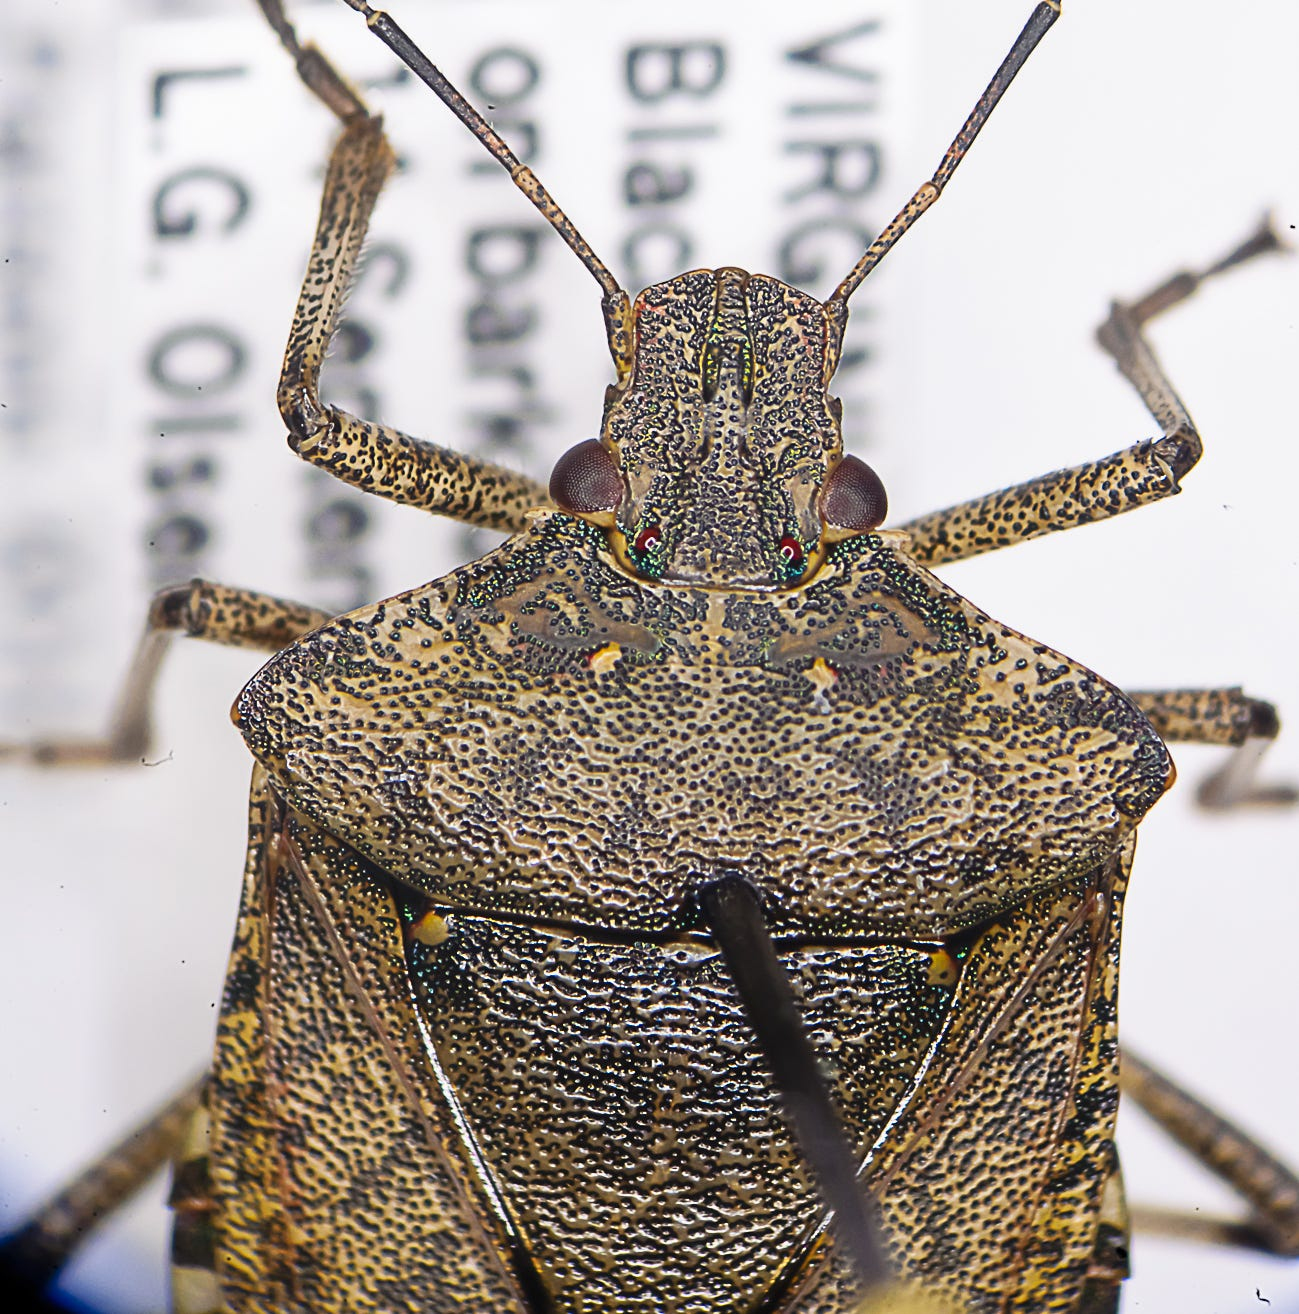 Putnam: Stink bugs likely to 'get a lot worse,' expert says